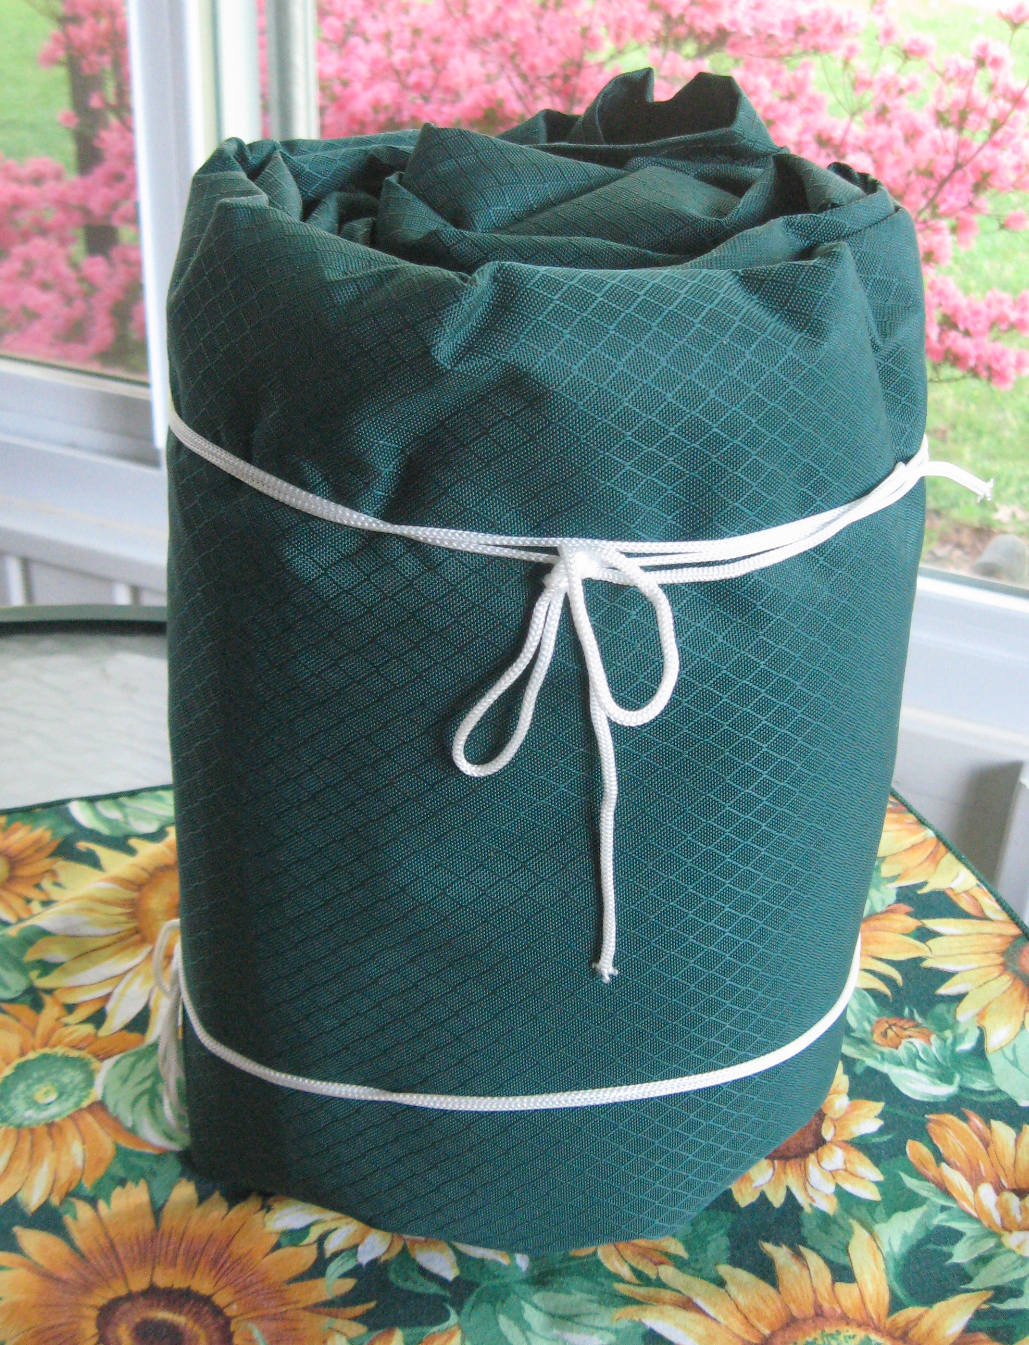 win a really nice grill cover from empire patio covers ends